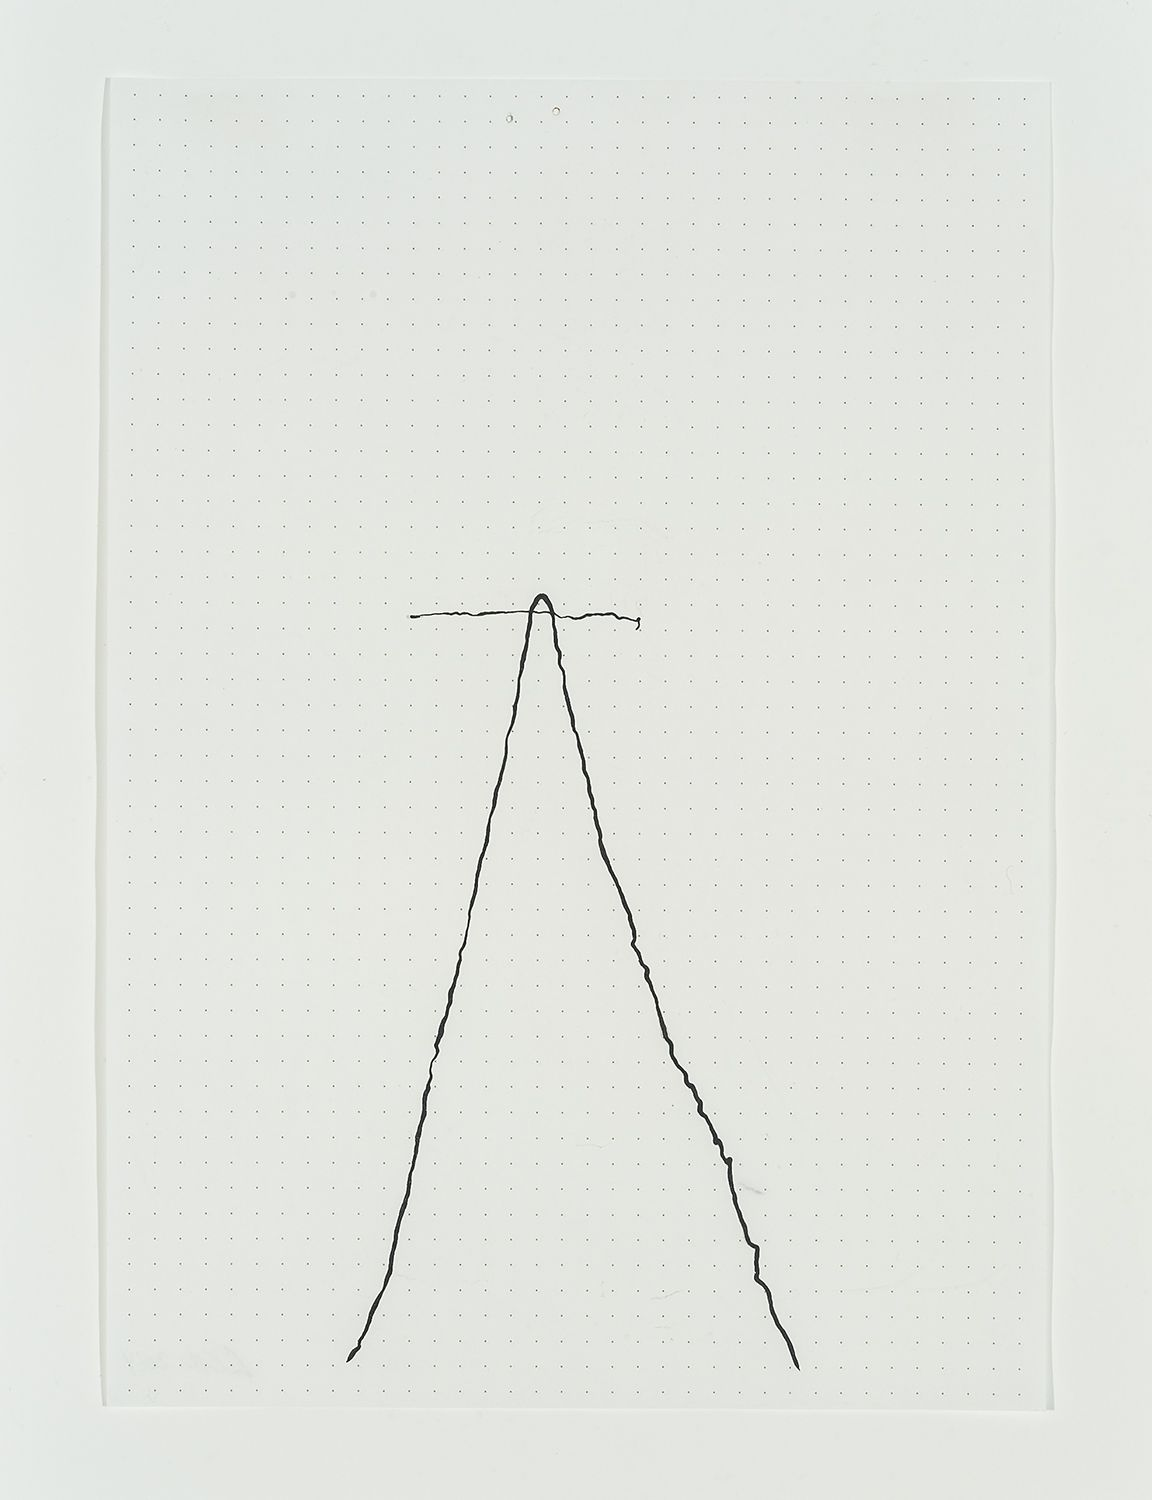 """Image of Lily Cox Richard's """"Untitled (small drawing number 1), hammered lead on paper, 8 1/4 by 5 7/8 inches. Drawn in 2014."""